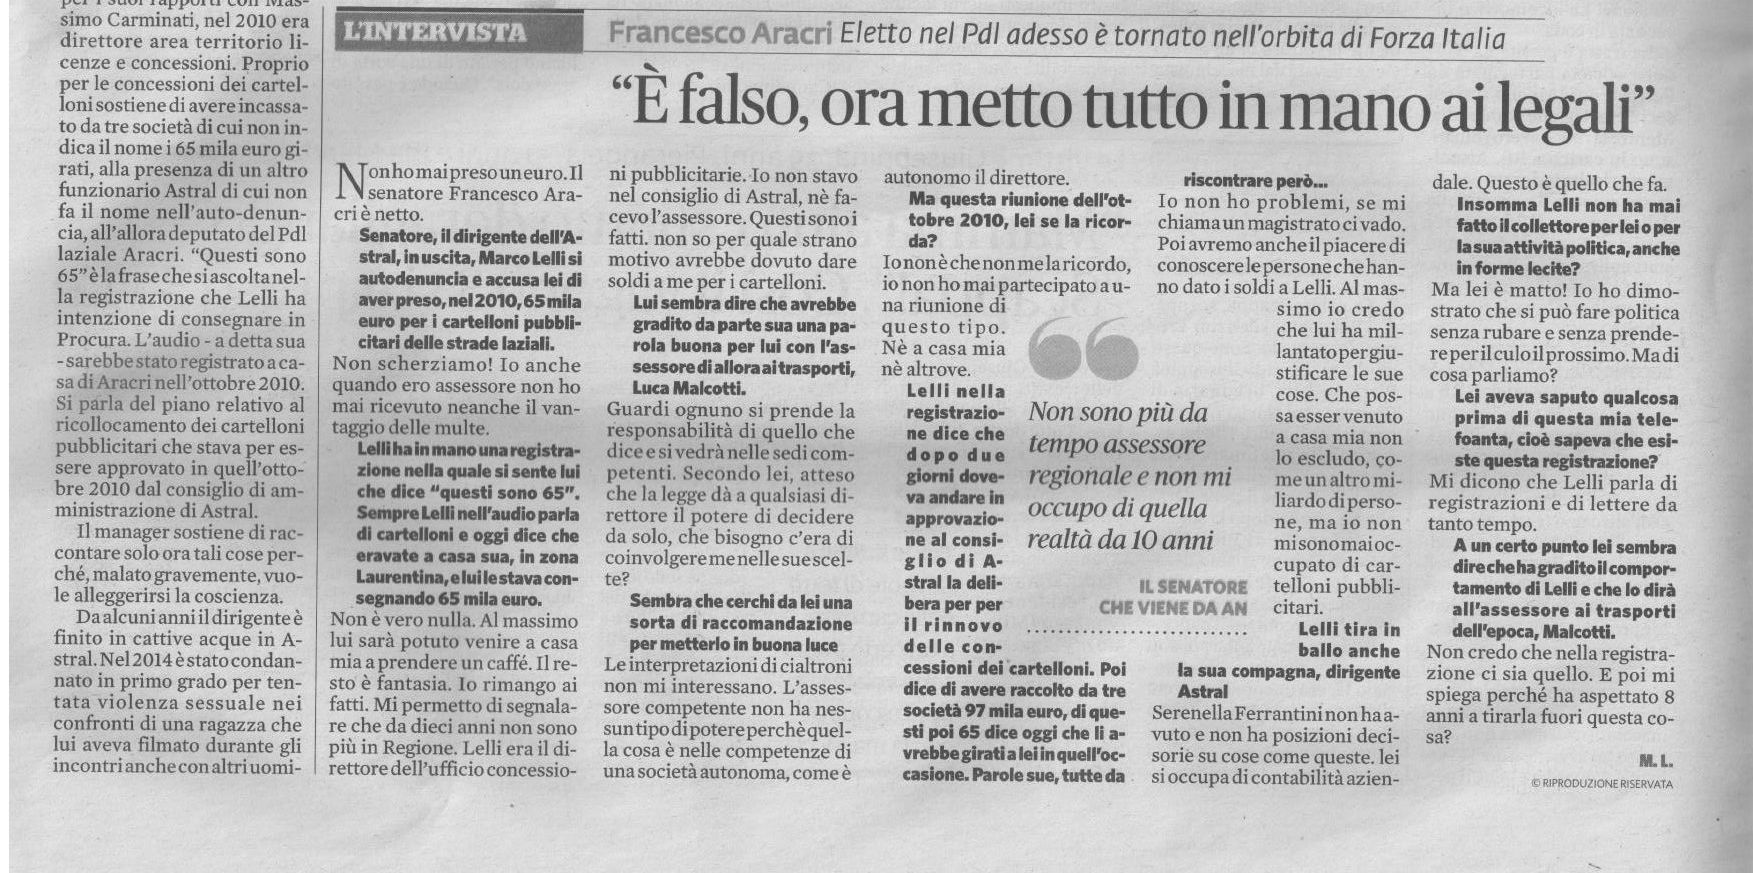 Fatto Quotidiano Aracri2